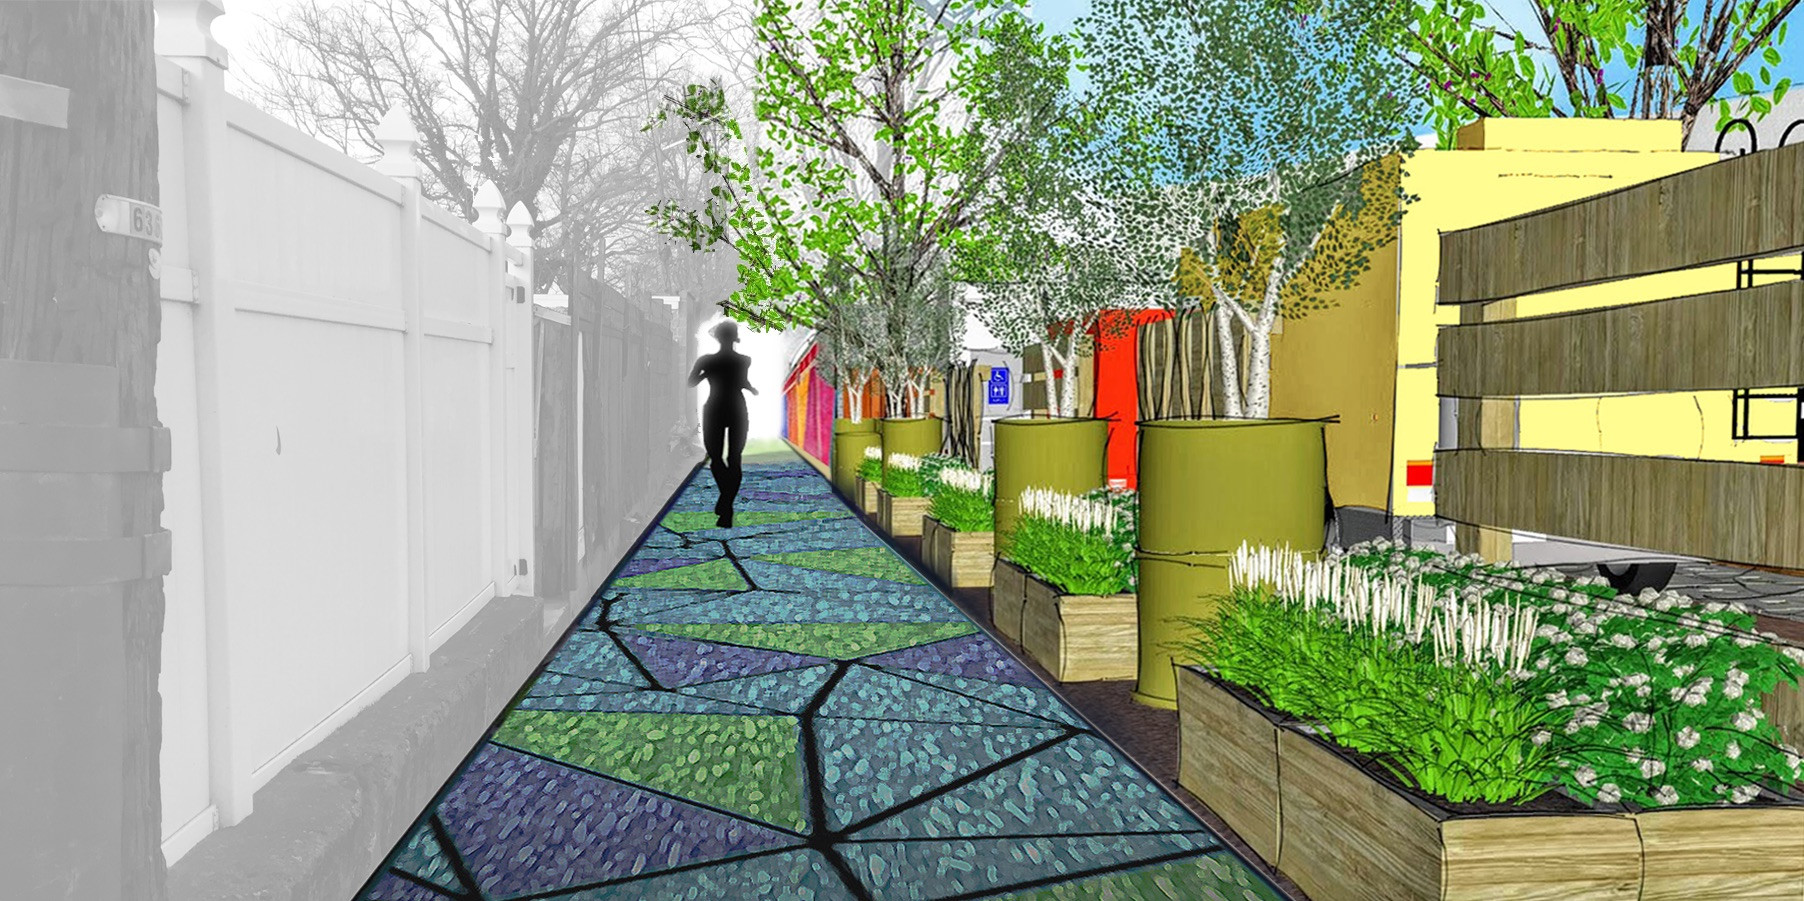 (Proposed) Cohn Alley connecting to vacant lot.